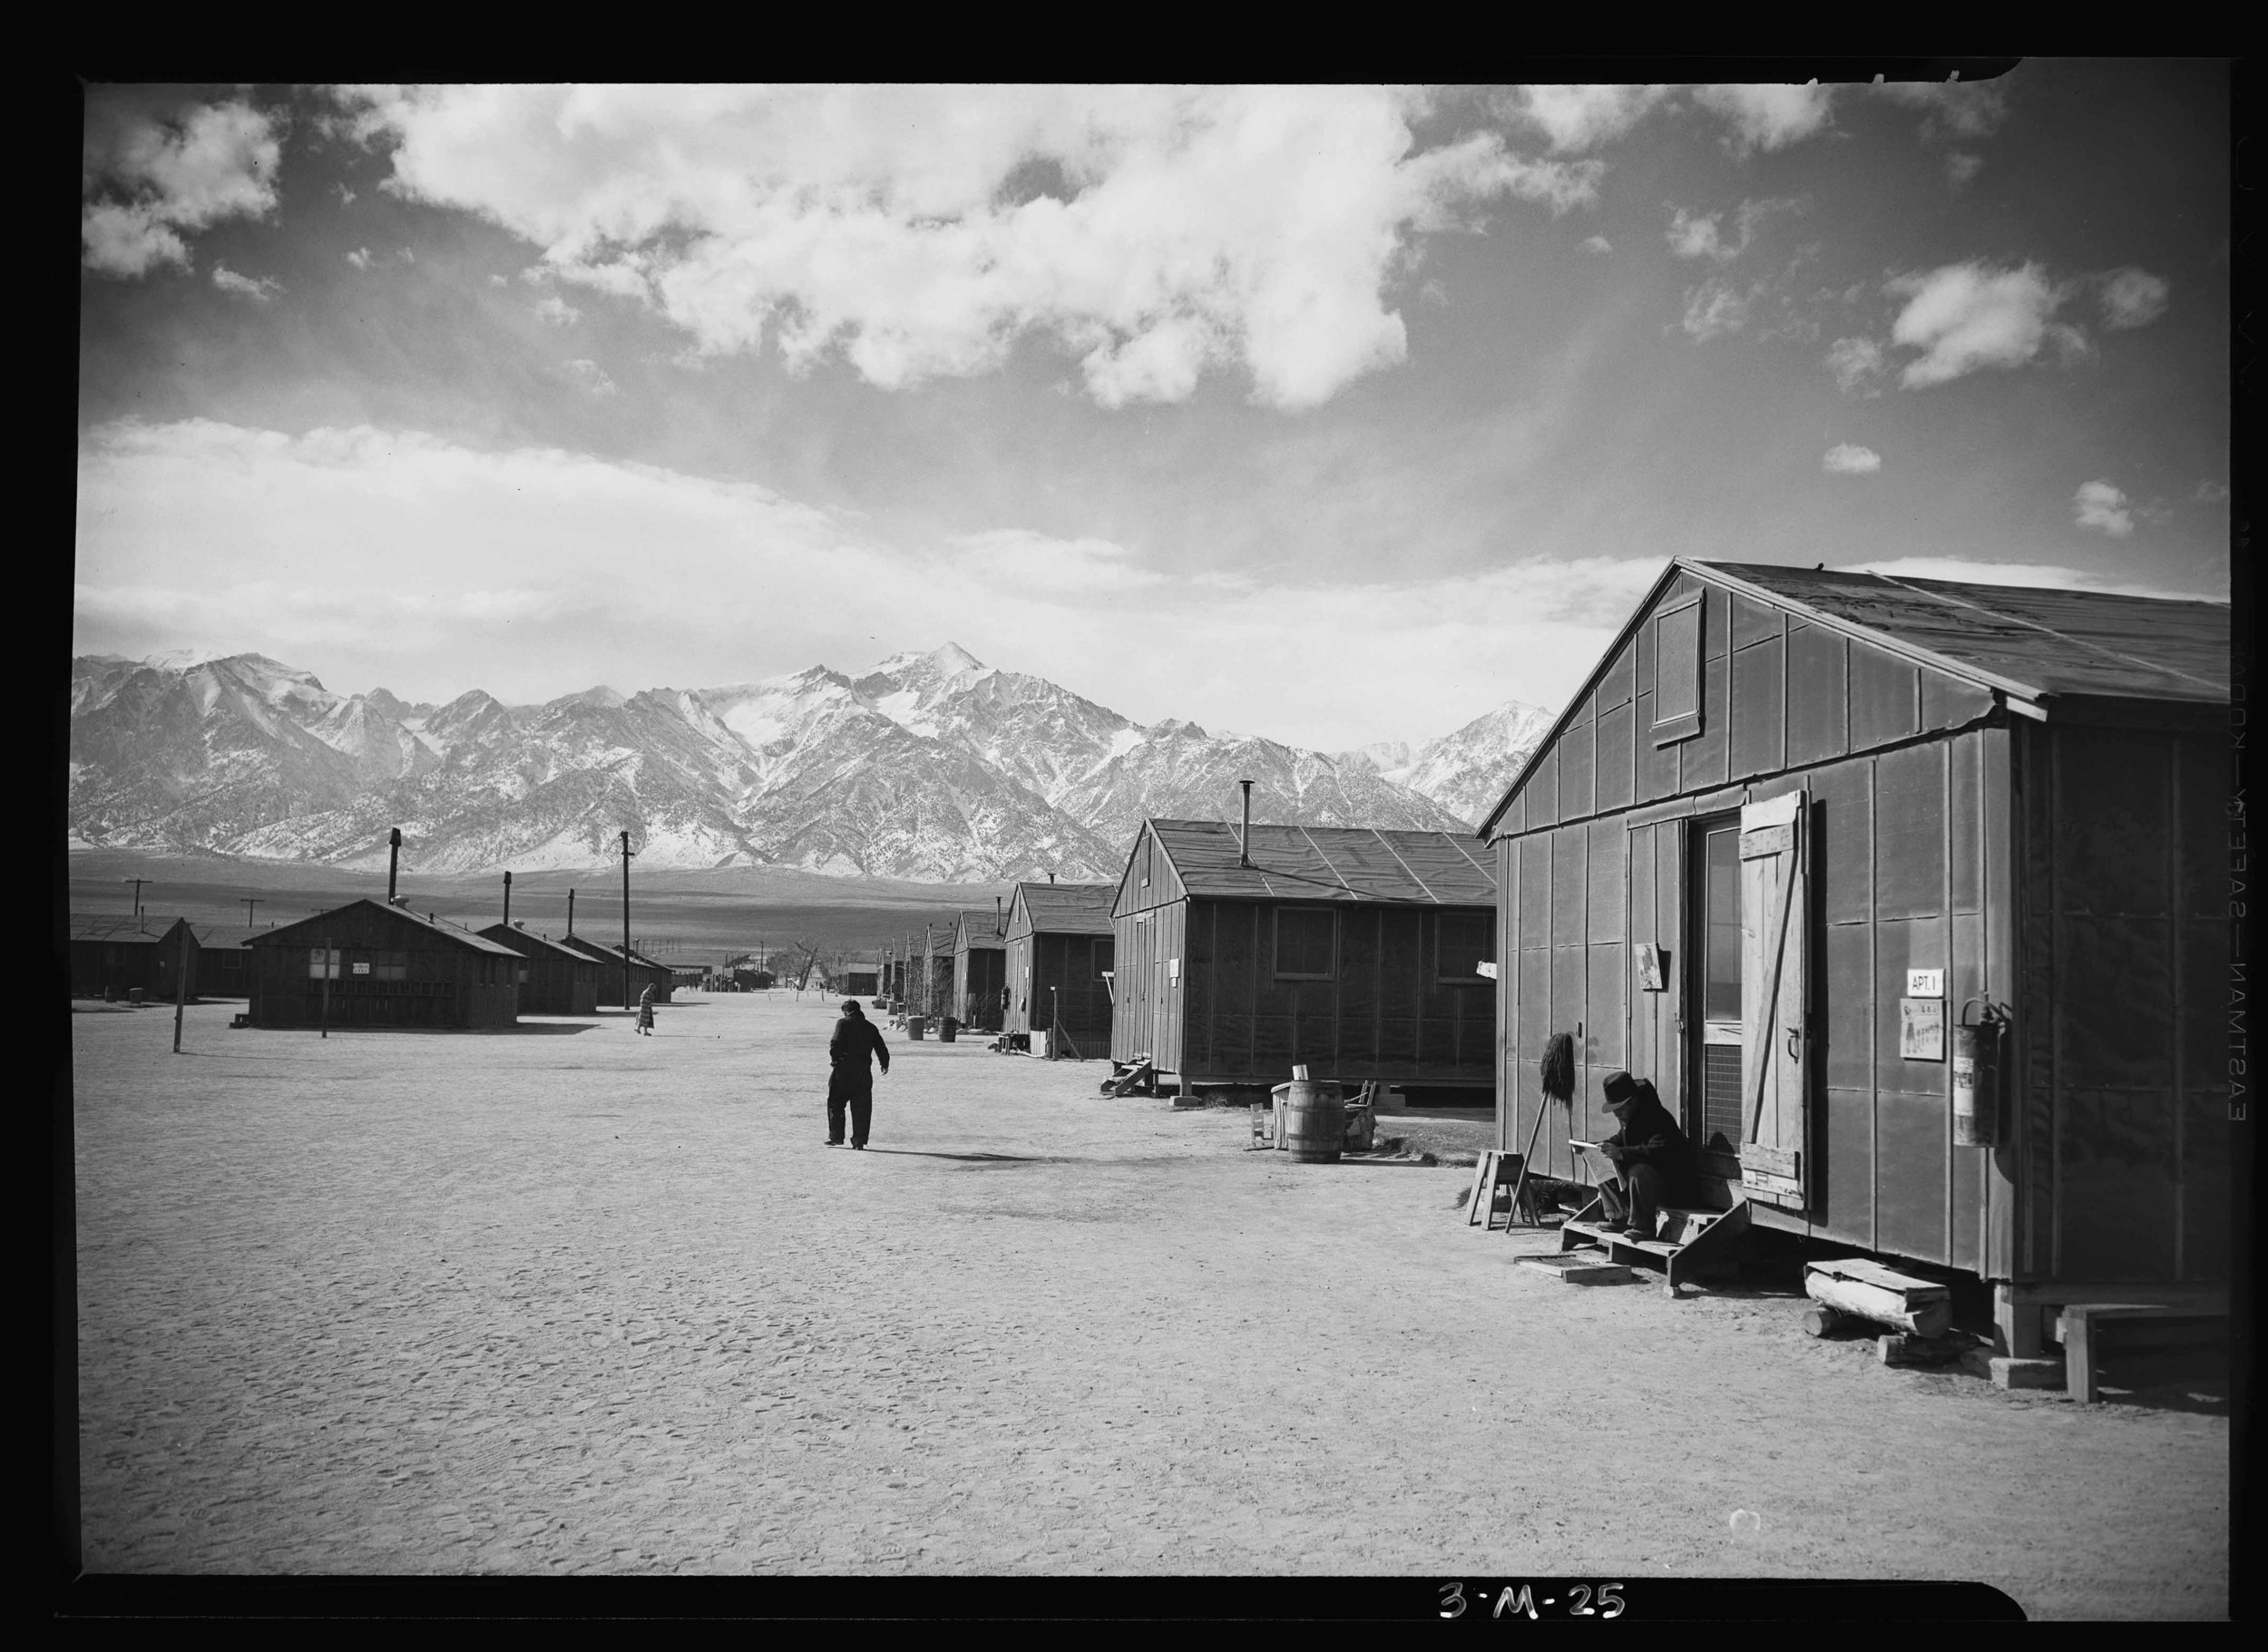 Ansel Adams, Owens Valley, California, 1943. Courtesy Library of Congress.